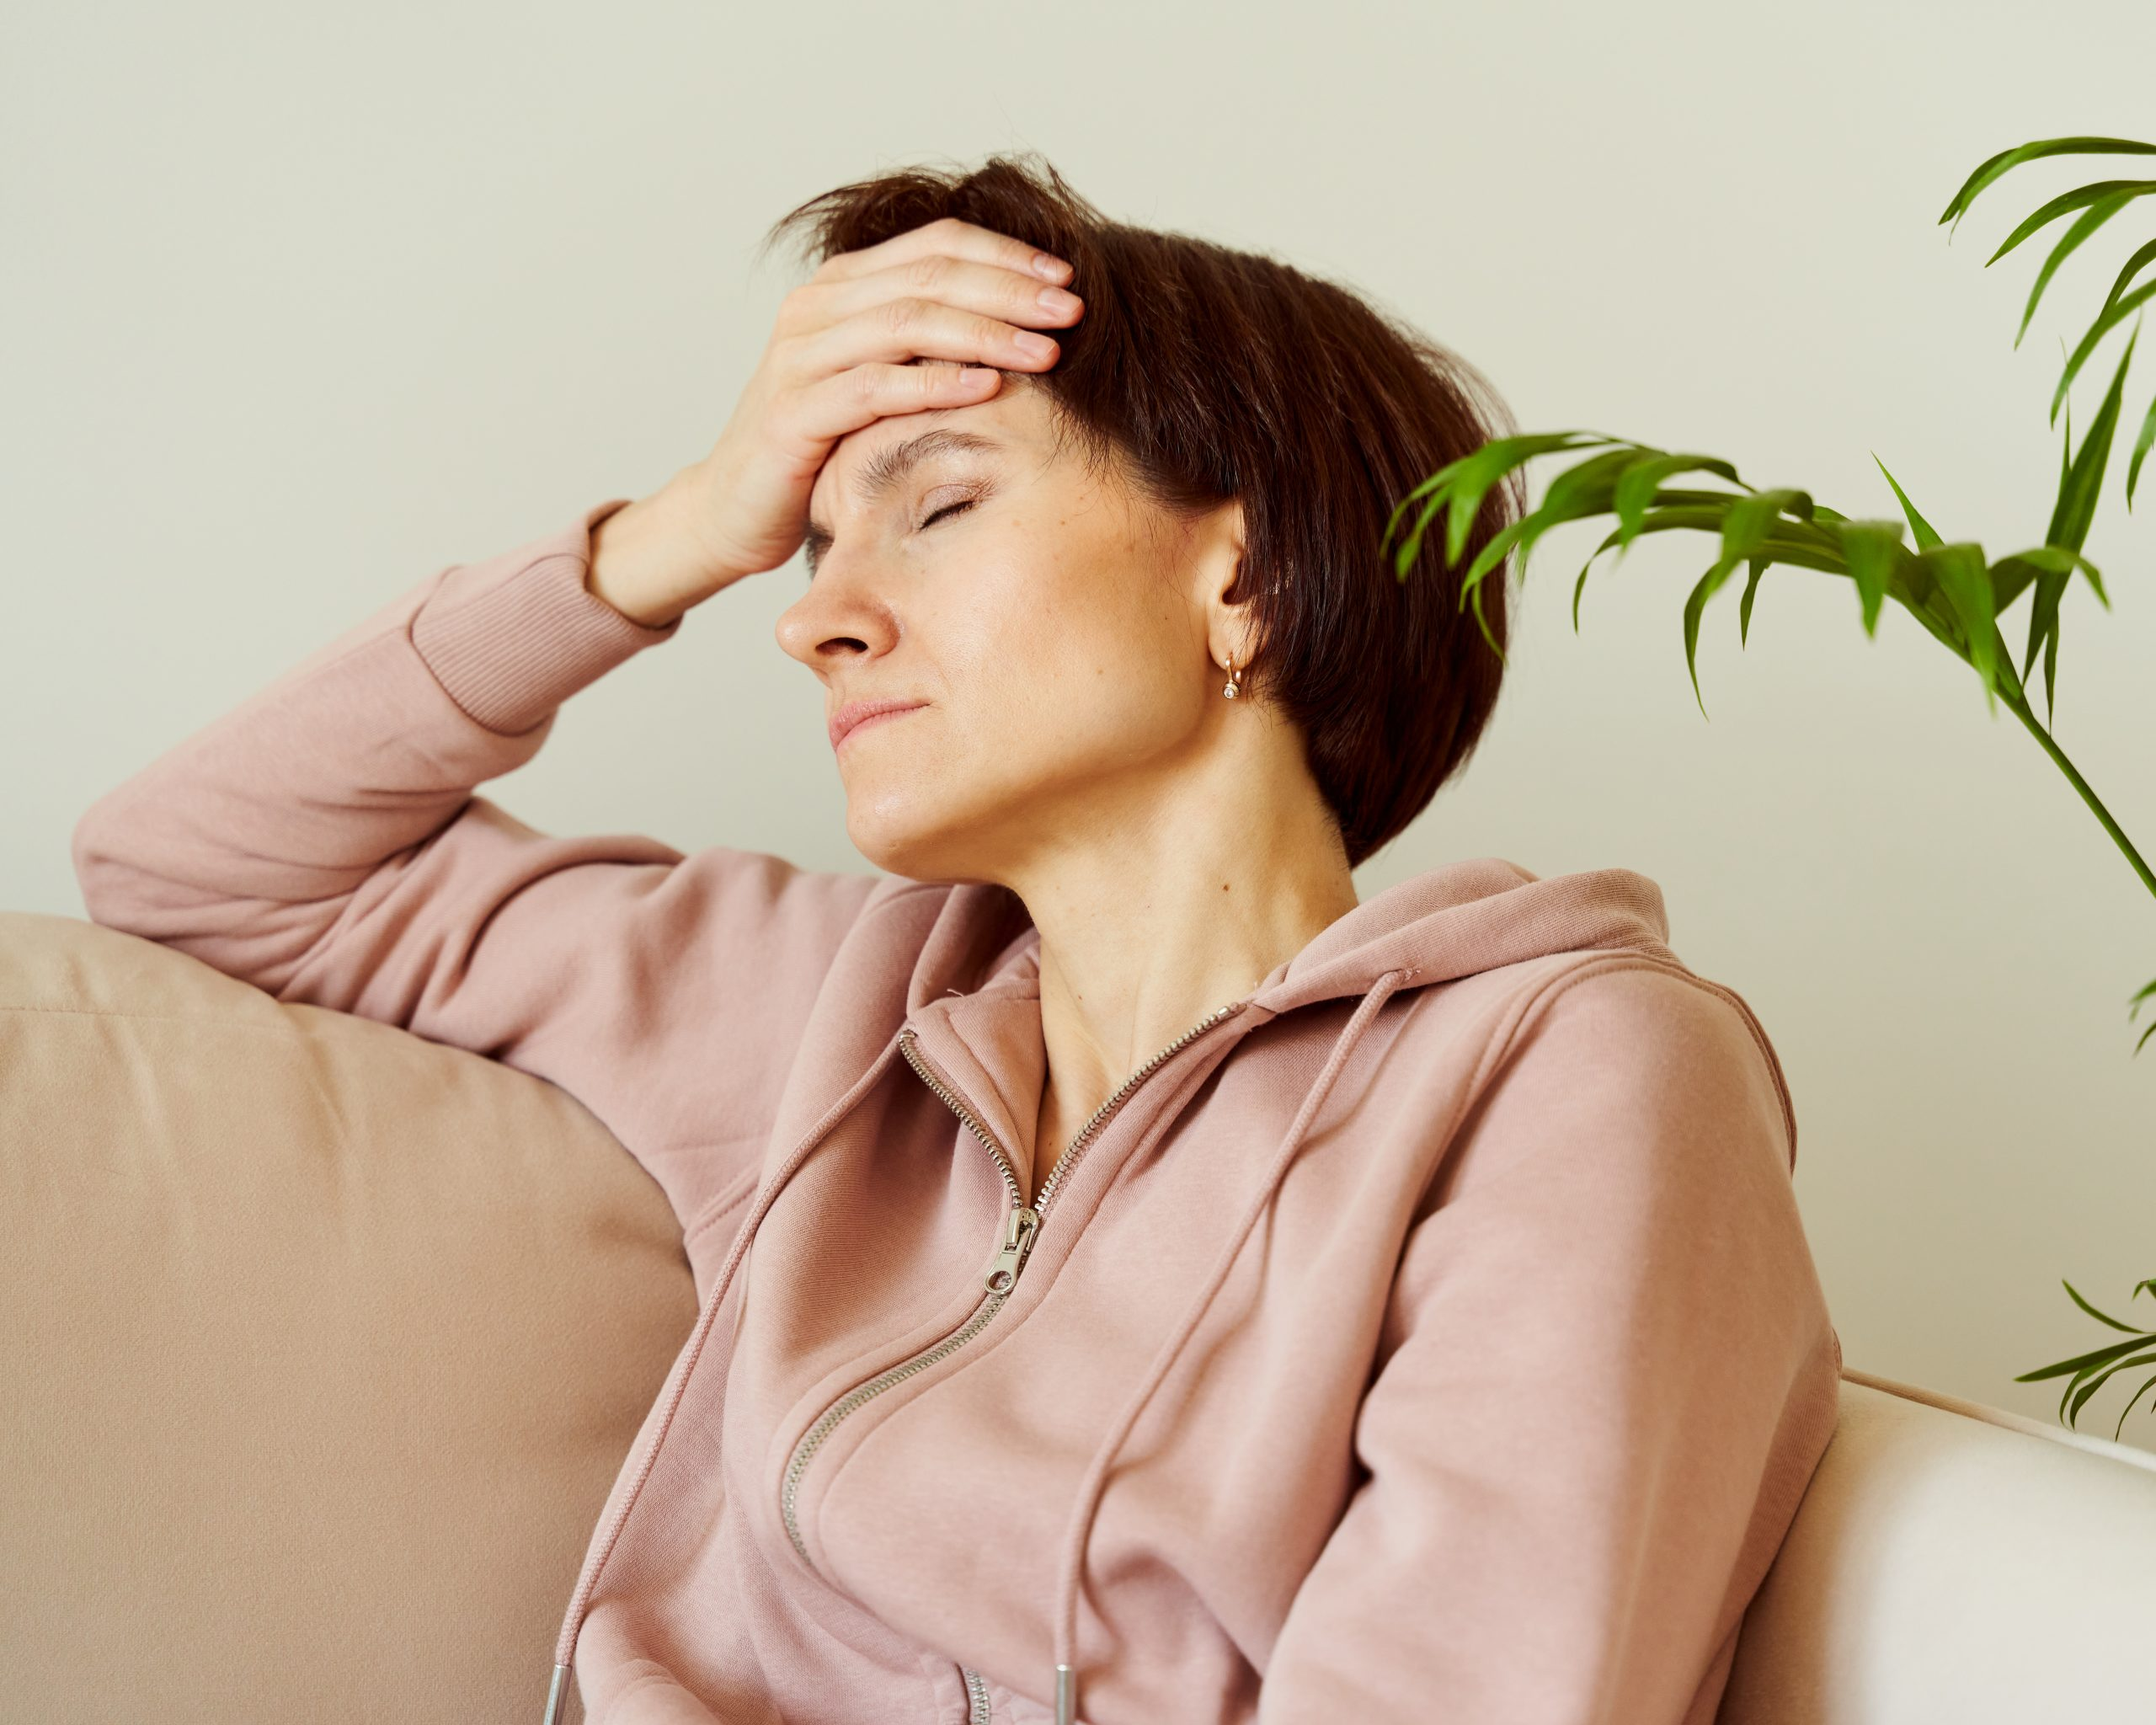 Woman putting hand on head due to headache after waking up, filling deep sadness. Migraine. Mental health of mature female, generation X. Tired lady sitting in home with closed eyes